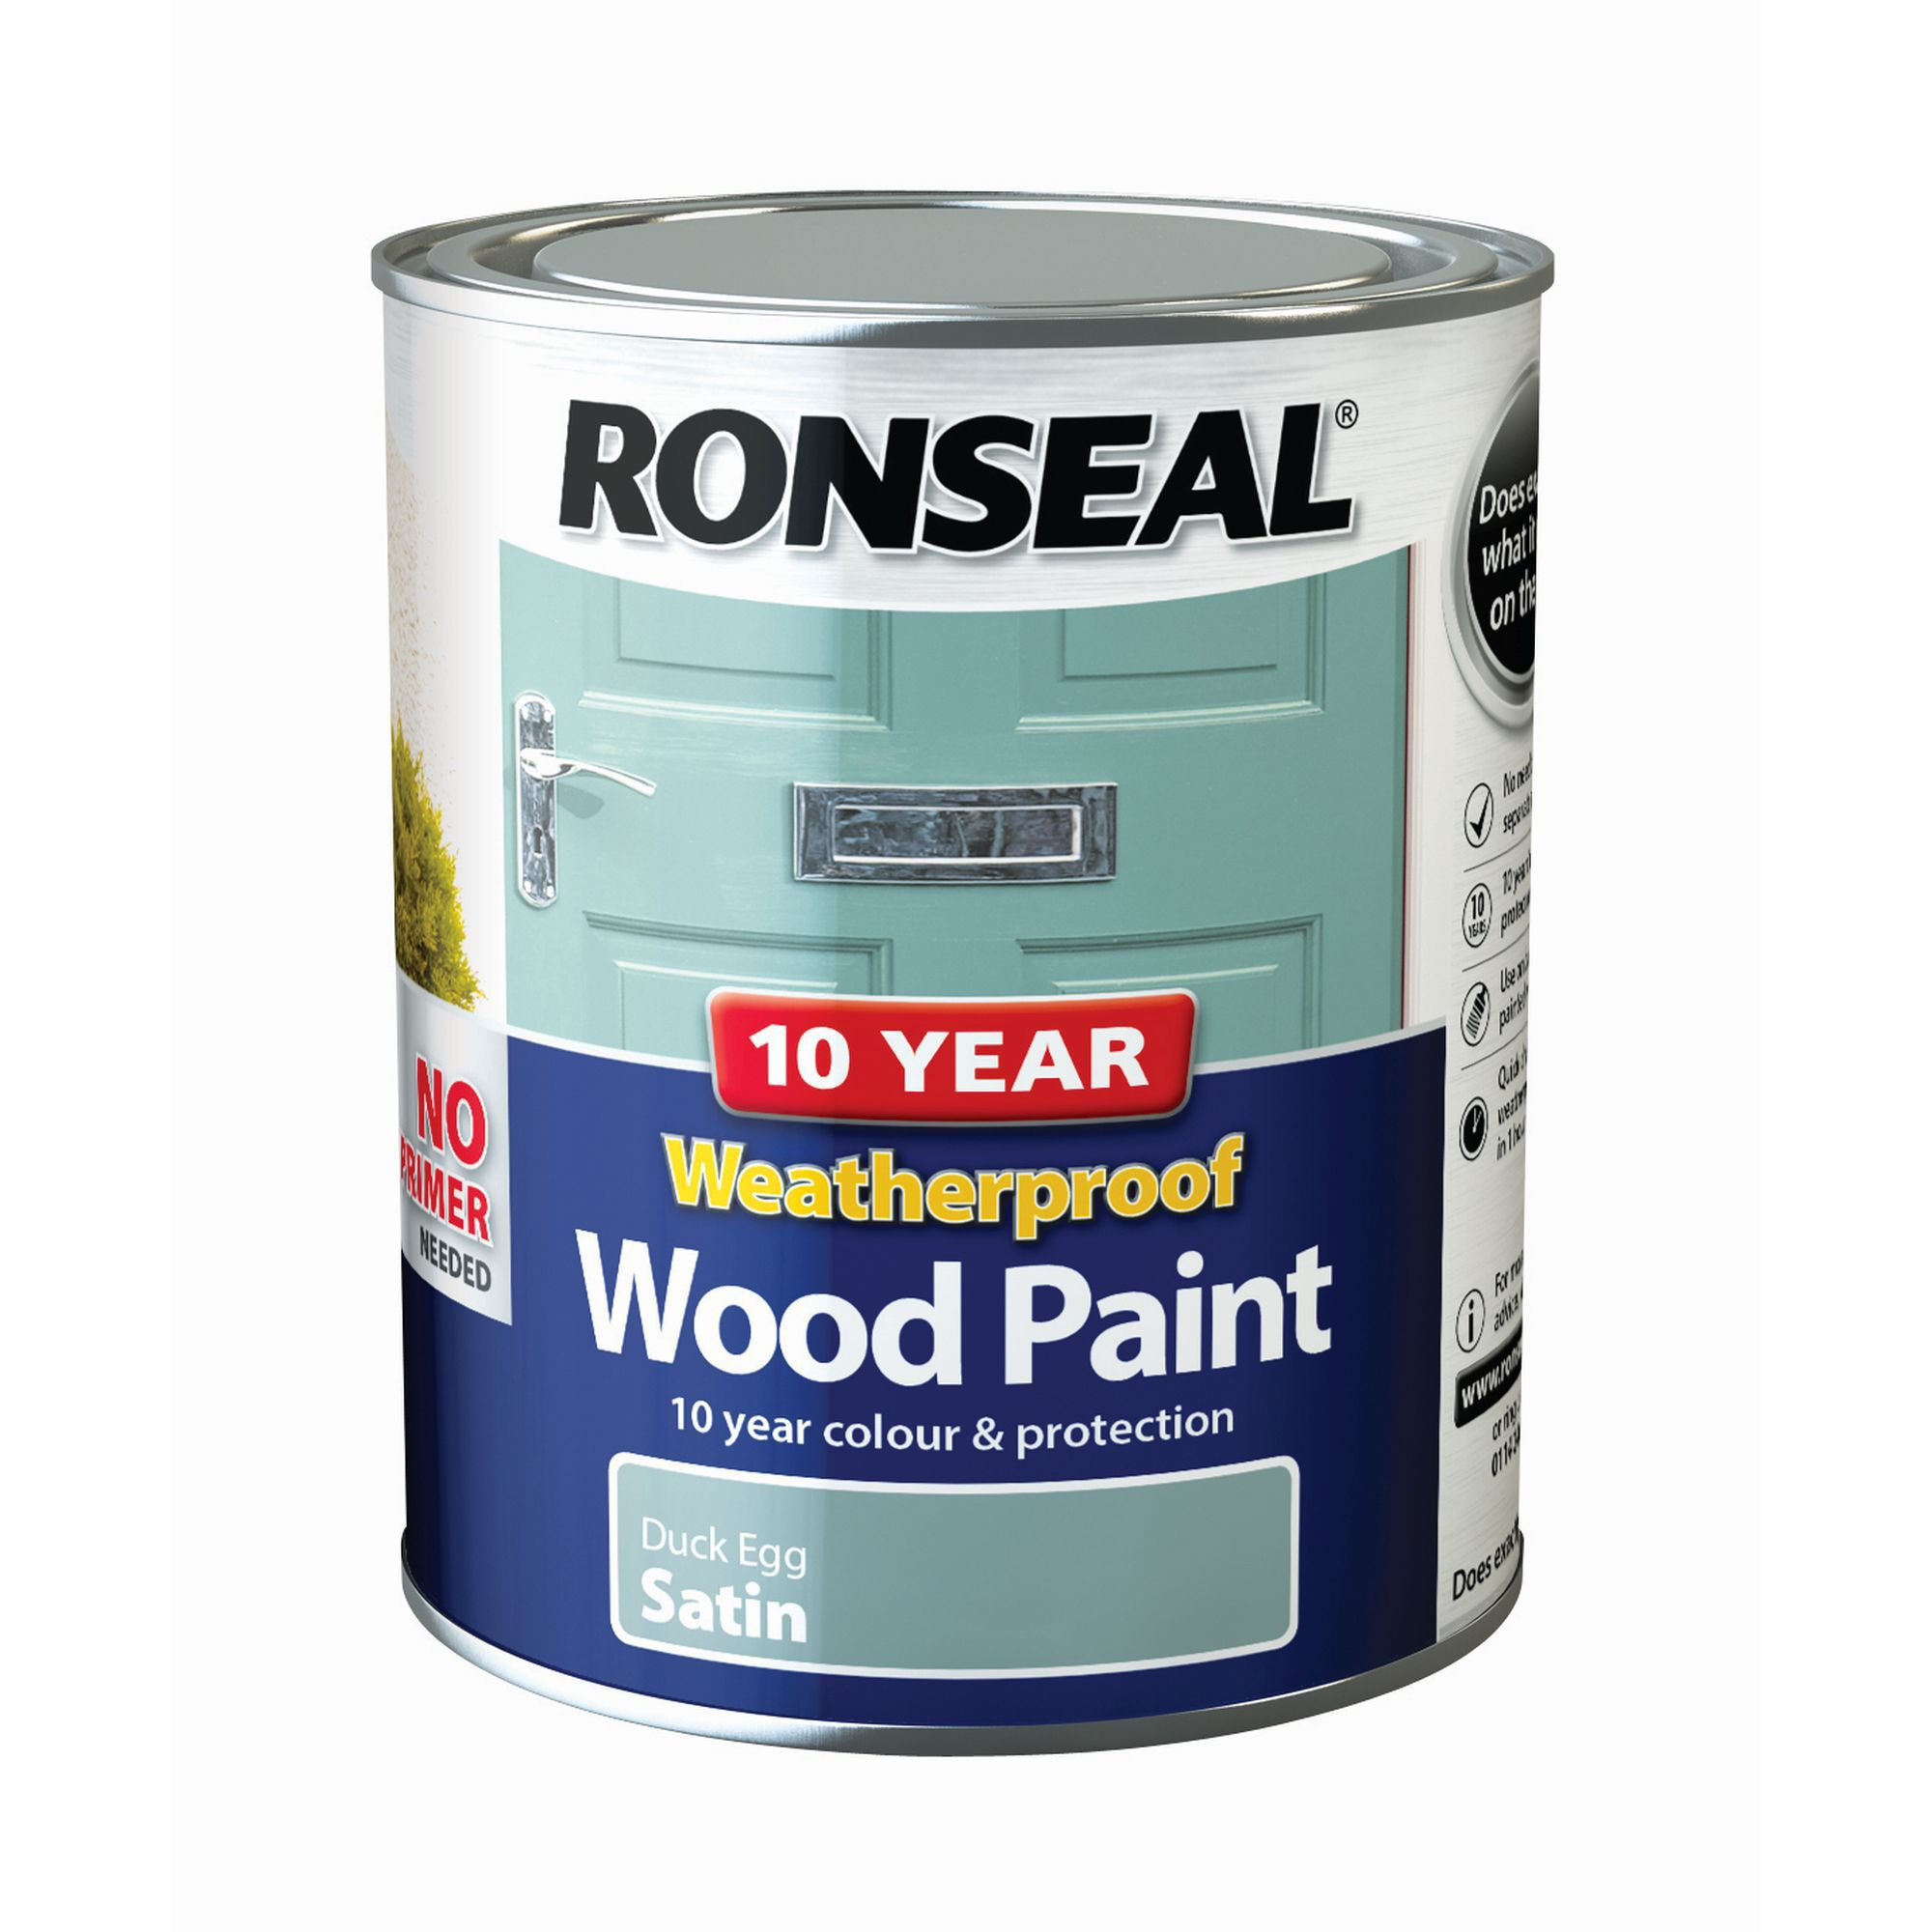 From Midnight To Duck Egg See: Ronseal Duck Egg Satin Wood Paint 0.75L